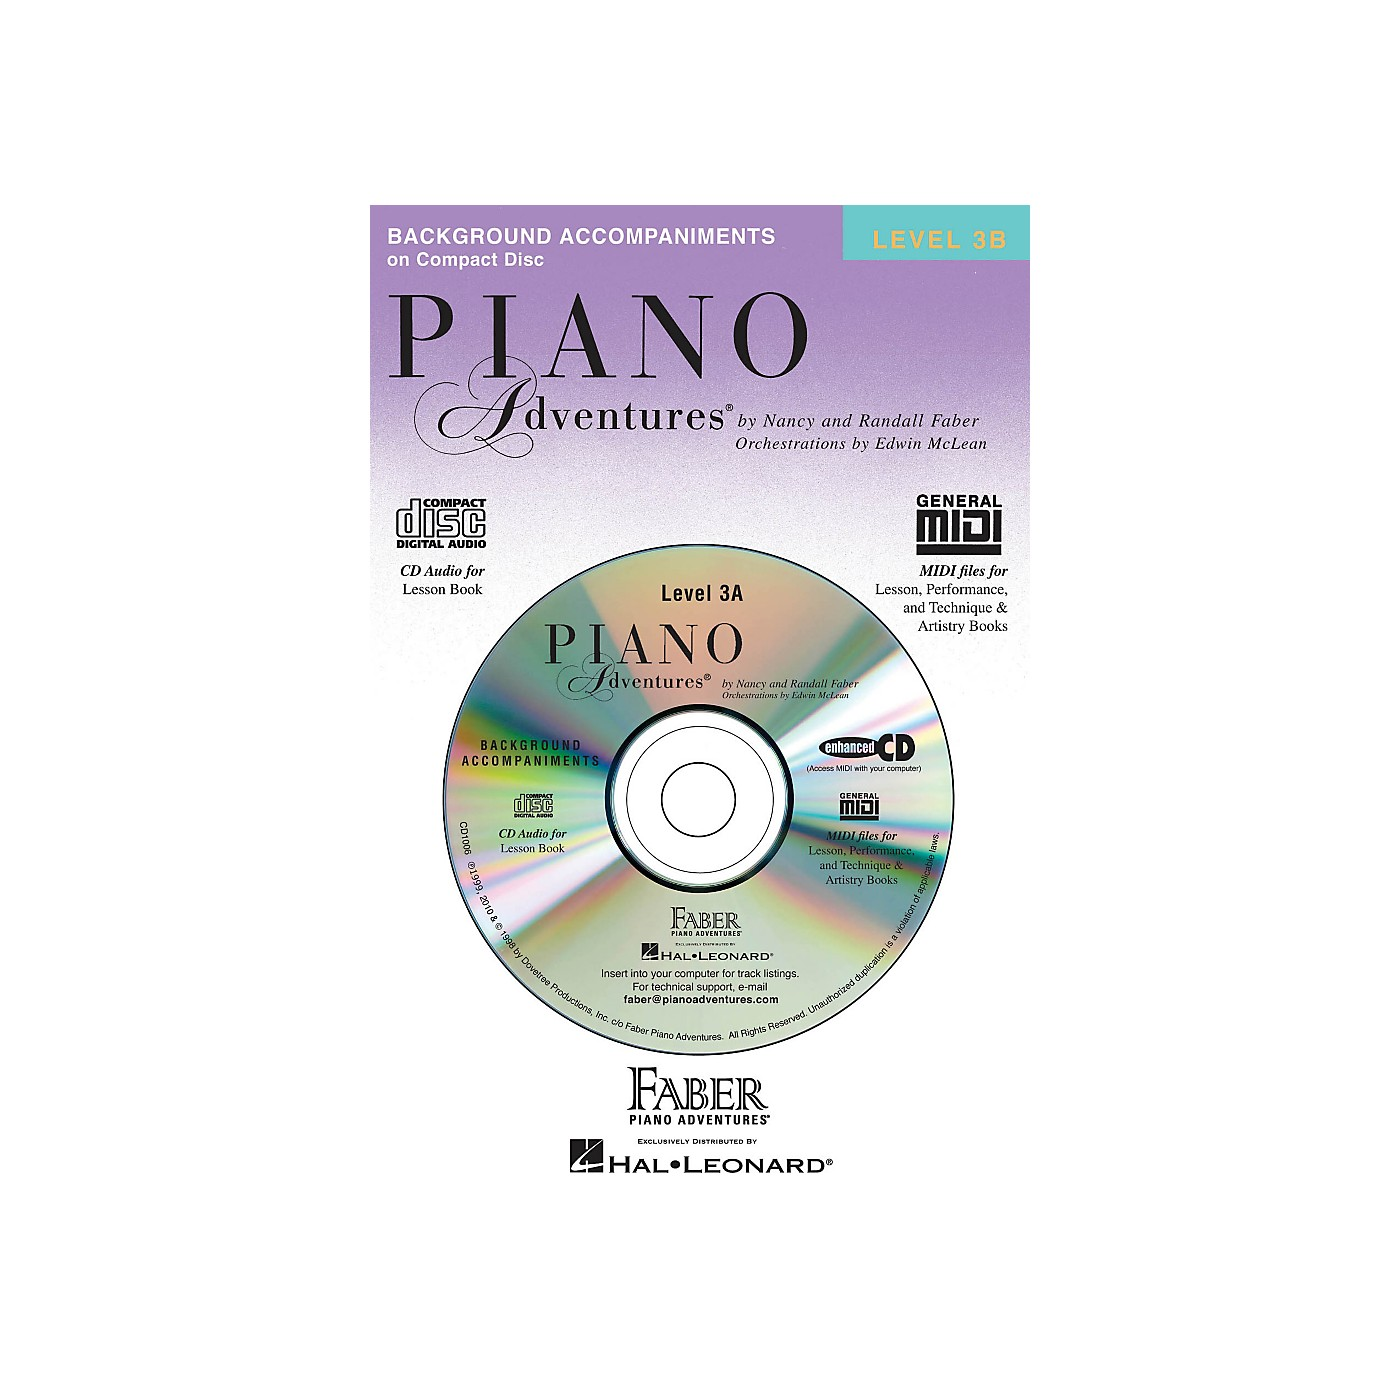 Faber Piano Adventures Piano Adventures CD for Lesson Level 3B - Faber Piano thumbnail